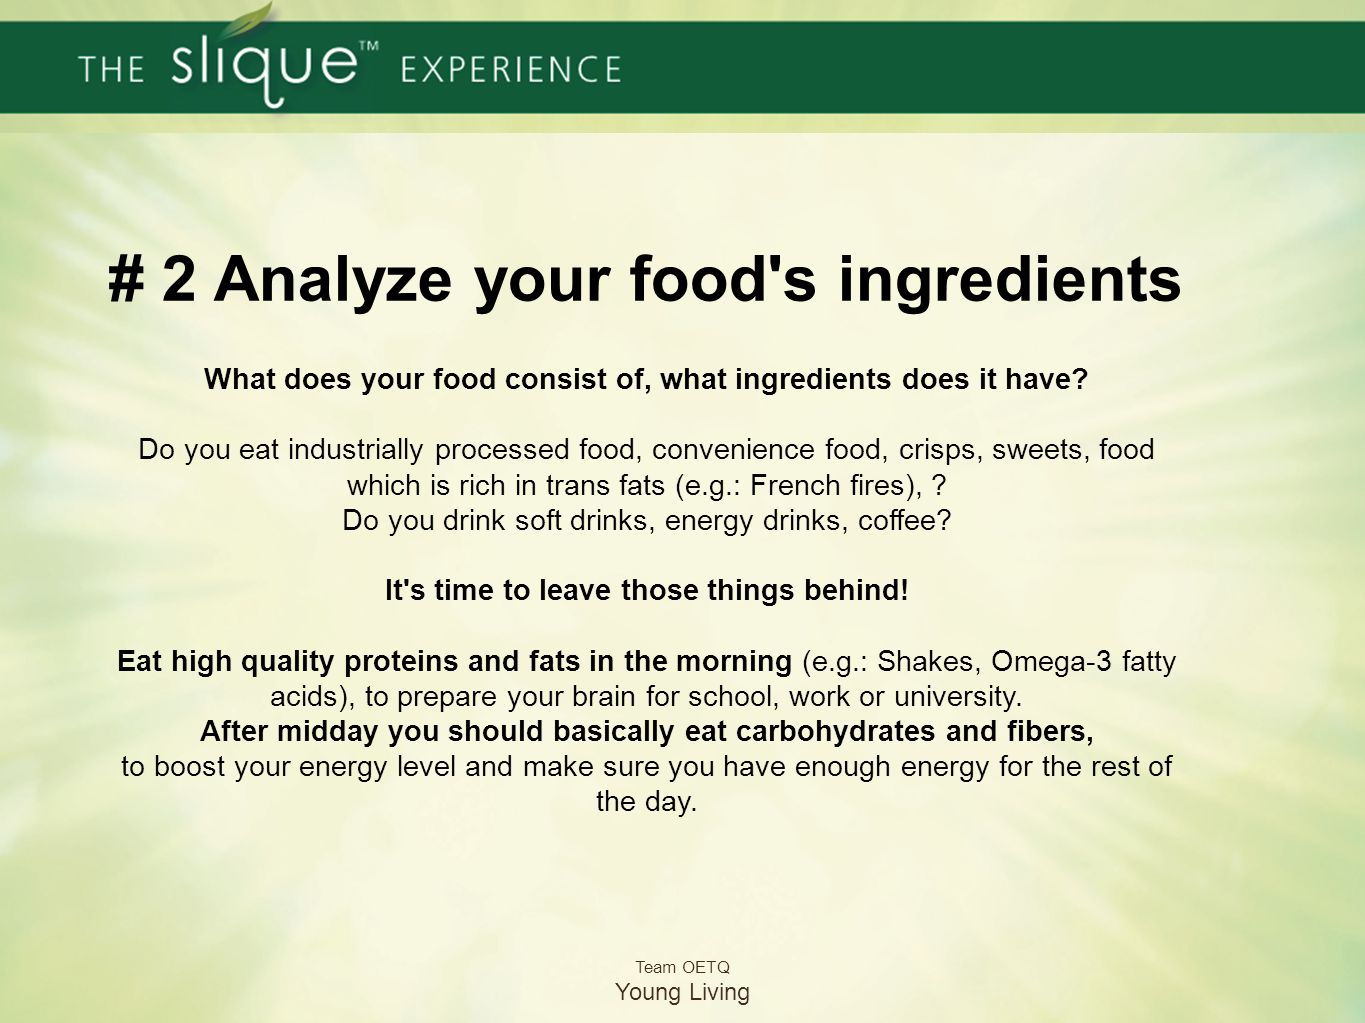 # 2 Analyze your food s ingredients What does your food consist of, what ingredients does it have Do you eat industrially processed food, convenience food, crisps, sweets, food which is rich in trans fats (e.g.: French fires), Do you drink soft drinks, energy drinks, coffee It s time to leave those things behind! Eat high quality proteins and fats in the morning (e.g.: Shakes, Omega-3 fatty acids), to prepare your brain for school, work or university. After midday you should basically eat carbohydrates and fibers, to boost your energy level and make sure you have enough energy for the rest of the day.